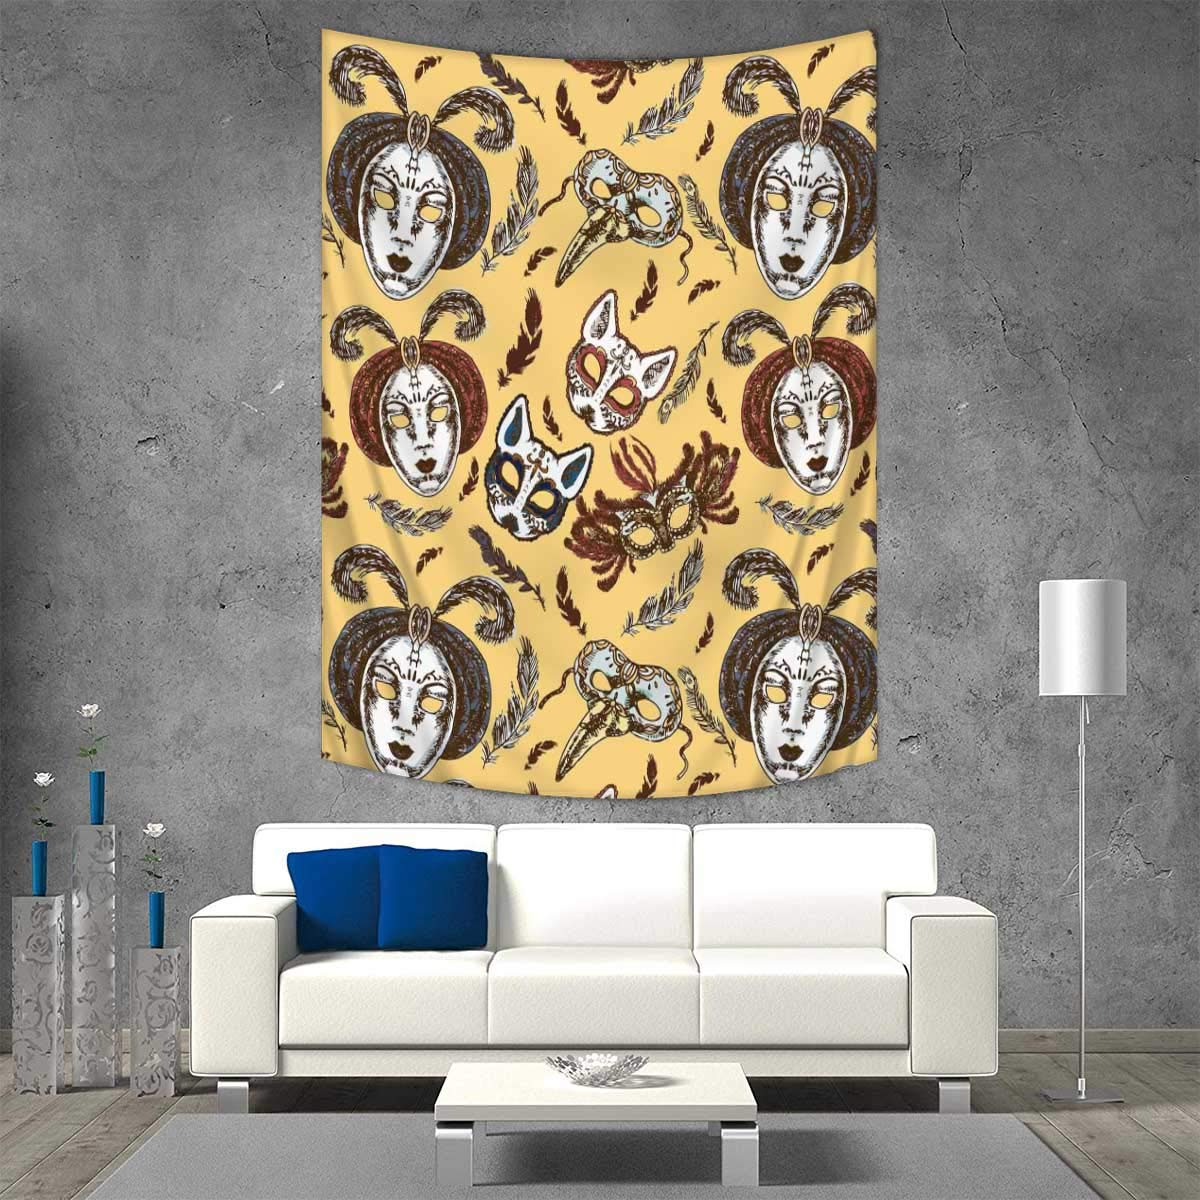 Amazoncom Matthew Wall Hanging Tapestries Font Design Inspired Hip